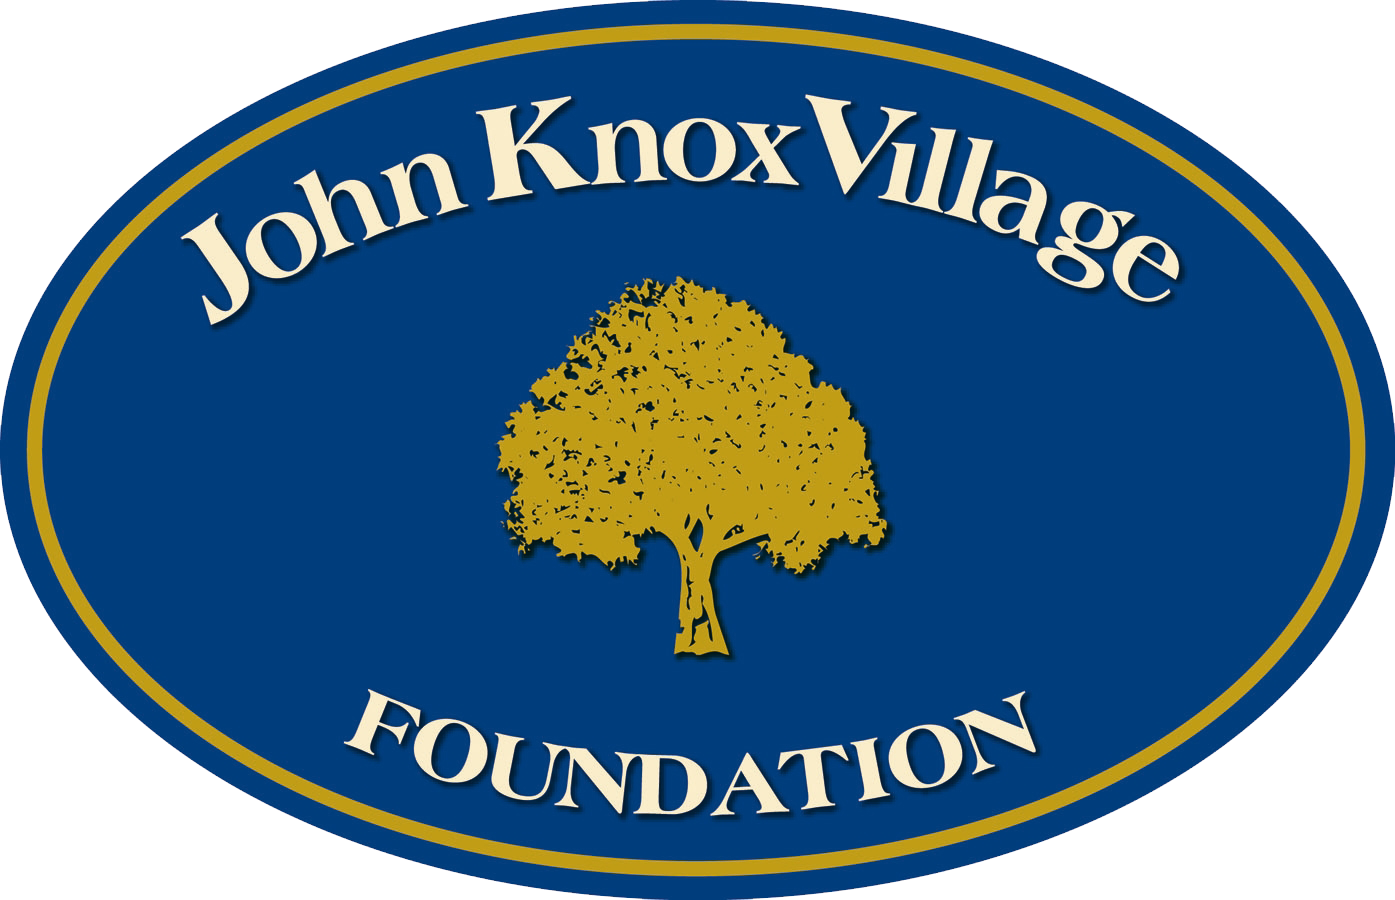 John Knox Village Foundation